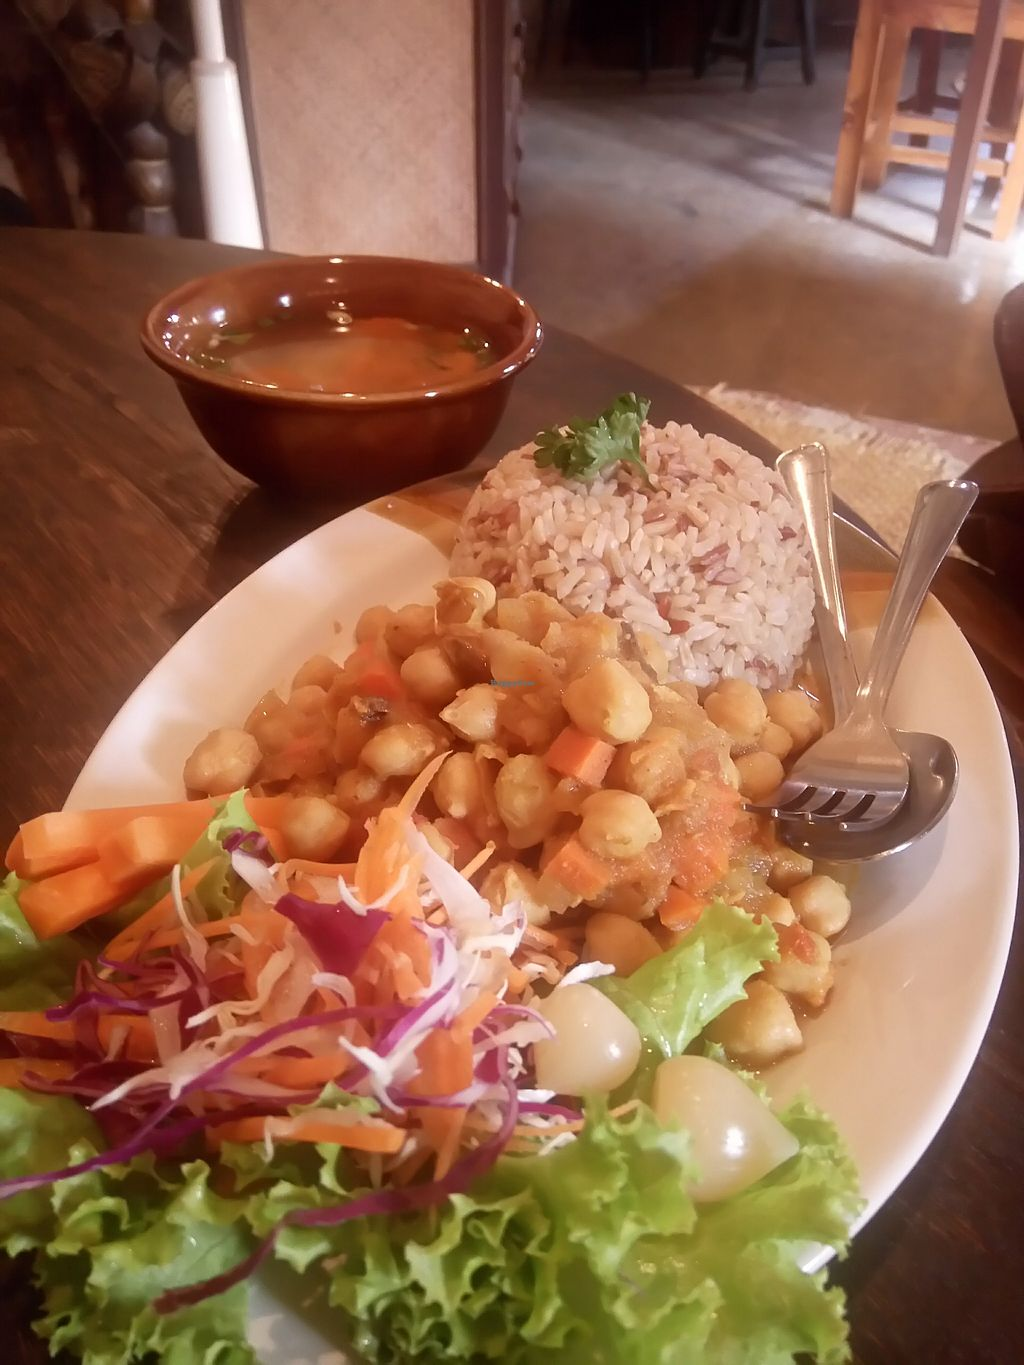 """Photo of Ramon Cafe  by <a href=""""/members/profile/alicus"""">alicus</a> <br/>Chickpeas <br/> February 17, 2018  - <a href='/contact/abuse/image/90714/360374'>Report</a>"""